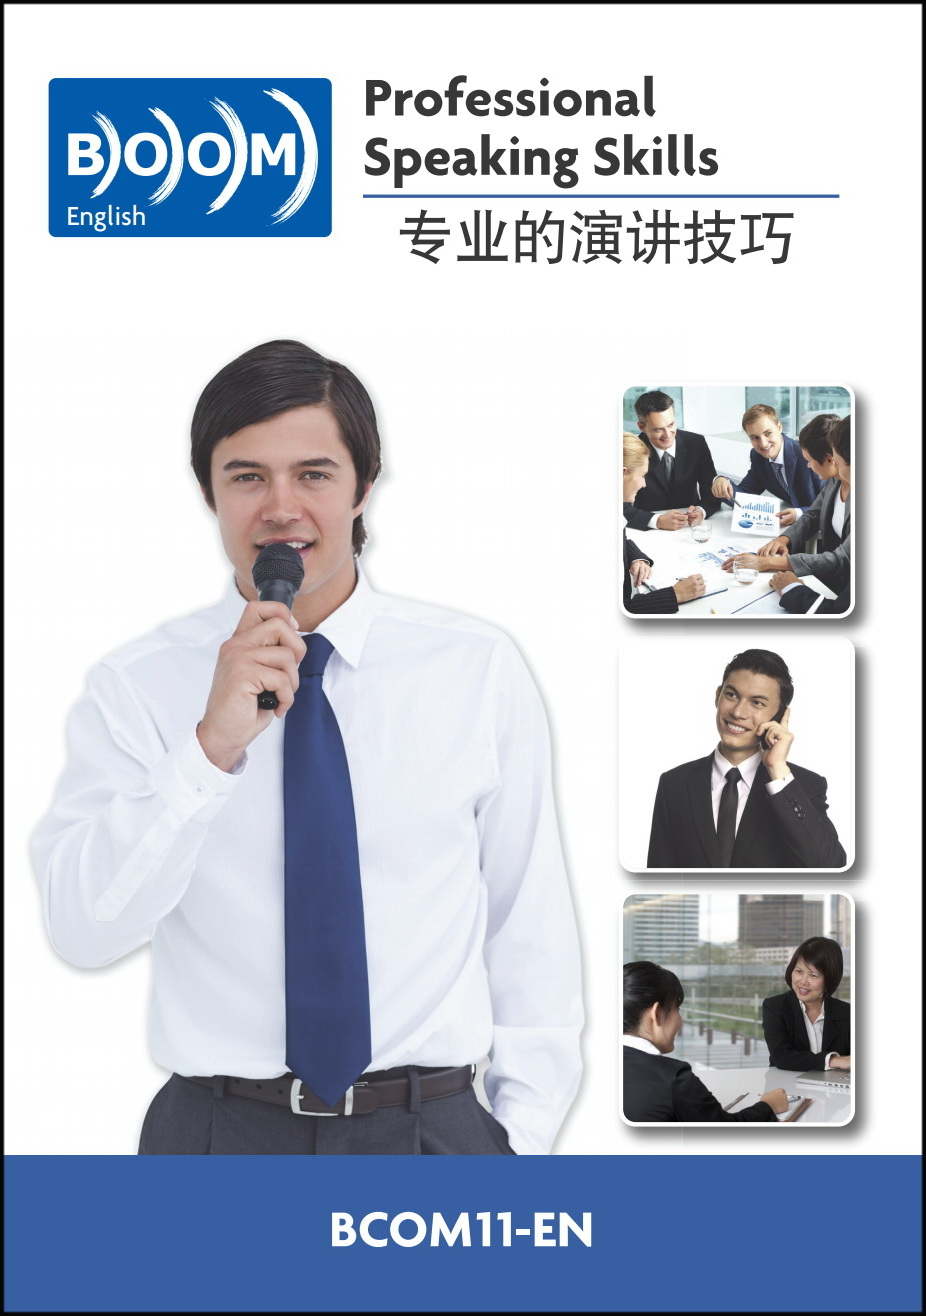 """Business, Banking, and Finance Language - Over 1 million students have studied this material.Our BOOM Biz series teaches modern, practical language for people learning for business people who need to use language in their job or to upgrade their career. Each course teaches more than 500 practical vocabulary, phrases, and grammar points.A useful Teacher's Guide is available for each book.Each course leads to an optional BOOM BIZ certification test.SAMPLE COURSE VIDEO;BUSINESS COMMUNICATIONS ENGLISH 1 FOR CHINESE SPEAKERS;MODULE 5 TOPIC 2 VOCAB 1 """"PRODUCTIVE AGENDAS""""Available courses;Business Communications Mandarin Chinese 1 for English SpeakersMarketing Chinese 1 for English SpeakersPublic Relations Chinese 1 for English SpeakersOrganizational Behavior and Leadership Chinese 1 for English SpeakersPersonal Banking Mandarin Chinese 1 for English SpeakersCorporate Banking Mandarin Chinese 1 for English SpeakersFinance Mandarin Chinese 1 for English SpeakersBusiness Communications English 1 for Chinese SpeakersMarketing English 1 for Chinese SpeakersPublic Relations English 1 for Chinese SpeakersOrganizational Behavior and Leadership English 1 for Chinese SpeakersPersonal Banking Mandarin English 1 for Chinese SpeakersCorporate Banking Mandarin English 1 for Chinese SpeakersFinance Mandarin English 1 for Chinese SpeakersComing Soon… Business Spanish series for English SpeakersComing Soon… Business English series for Spanish Speakers"""